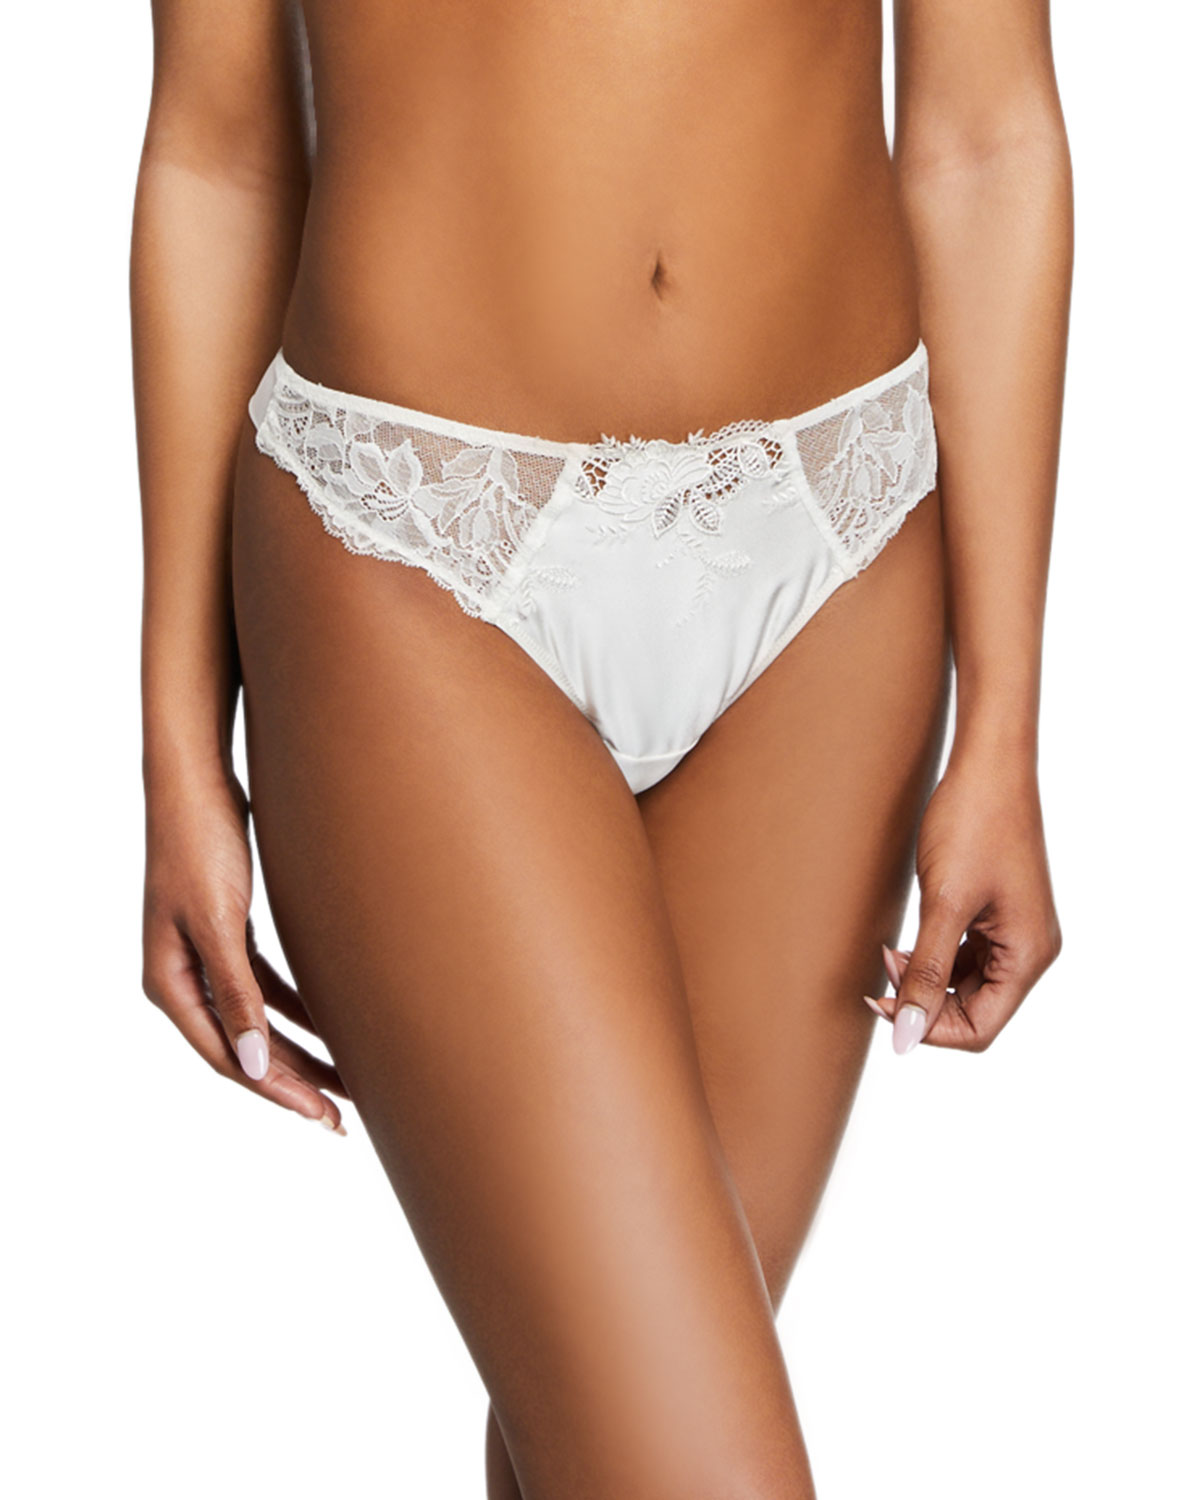 Soie Virtuouse Lace Thong